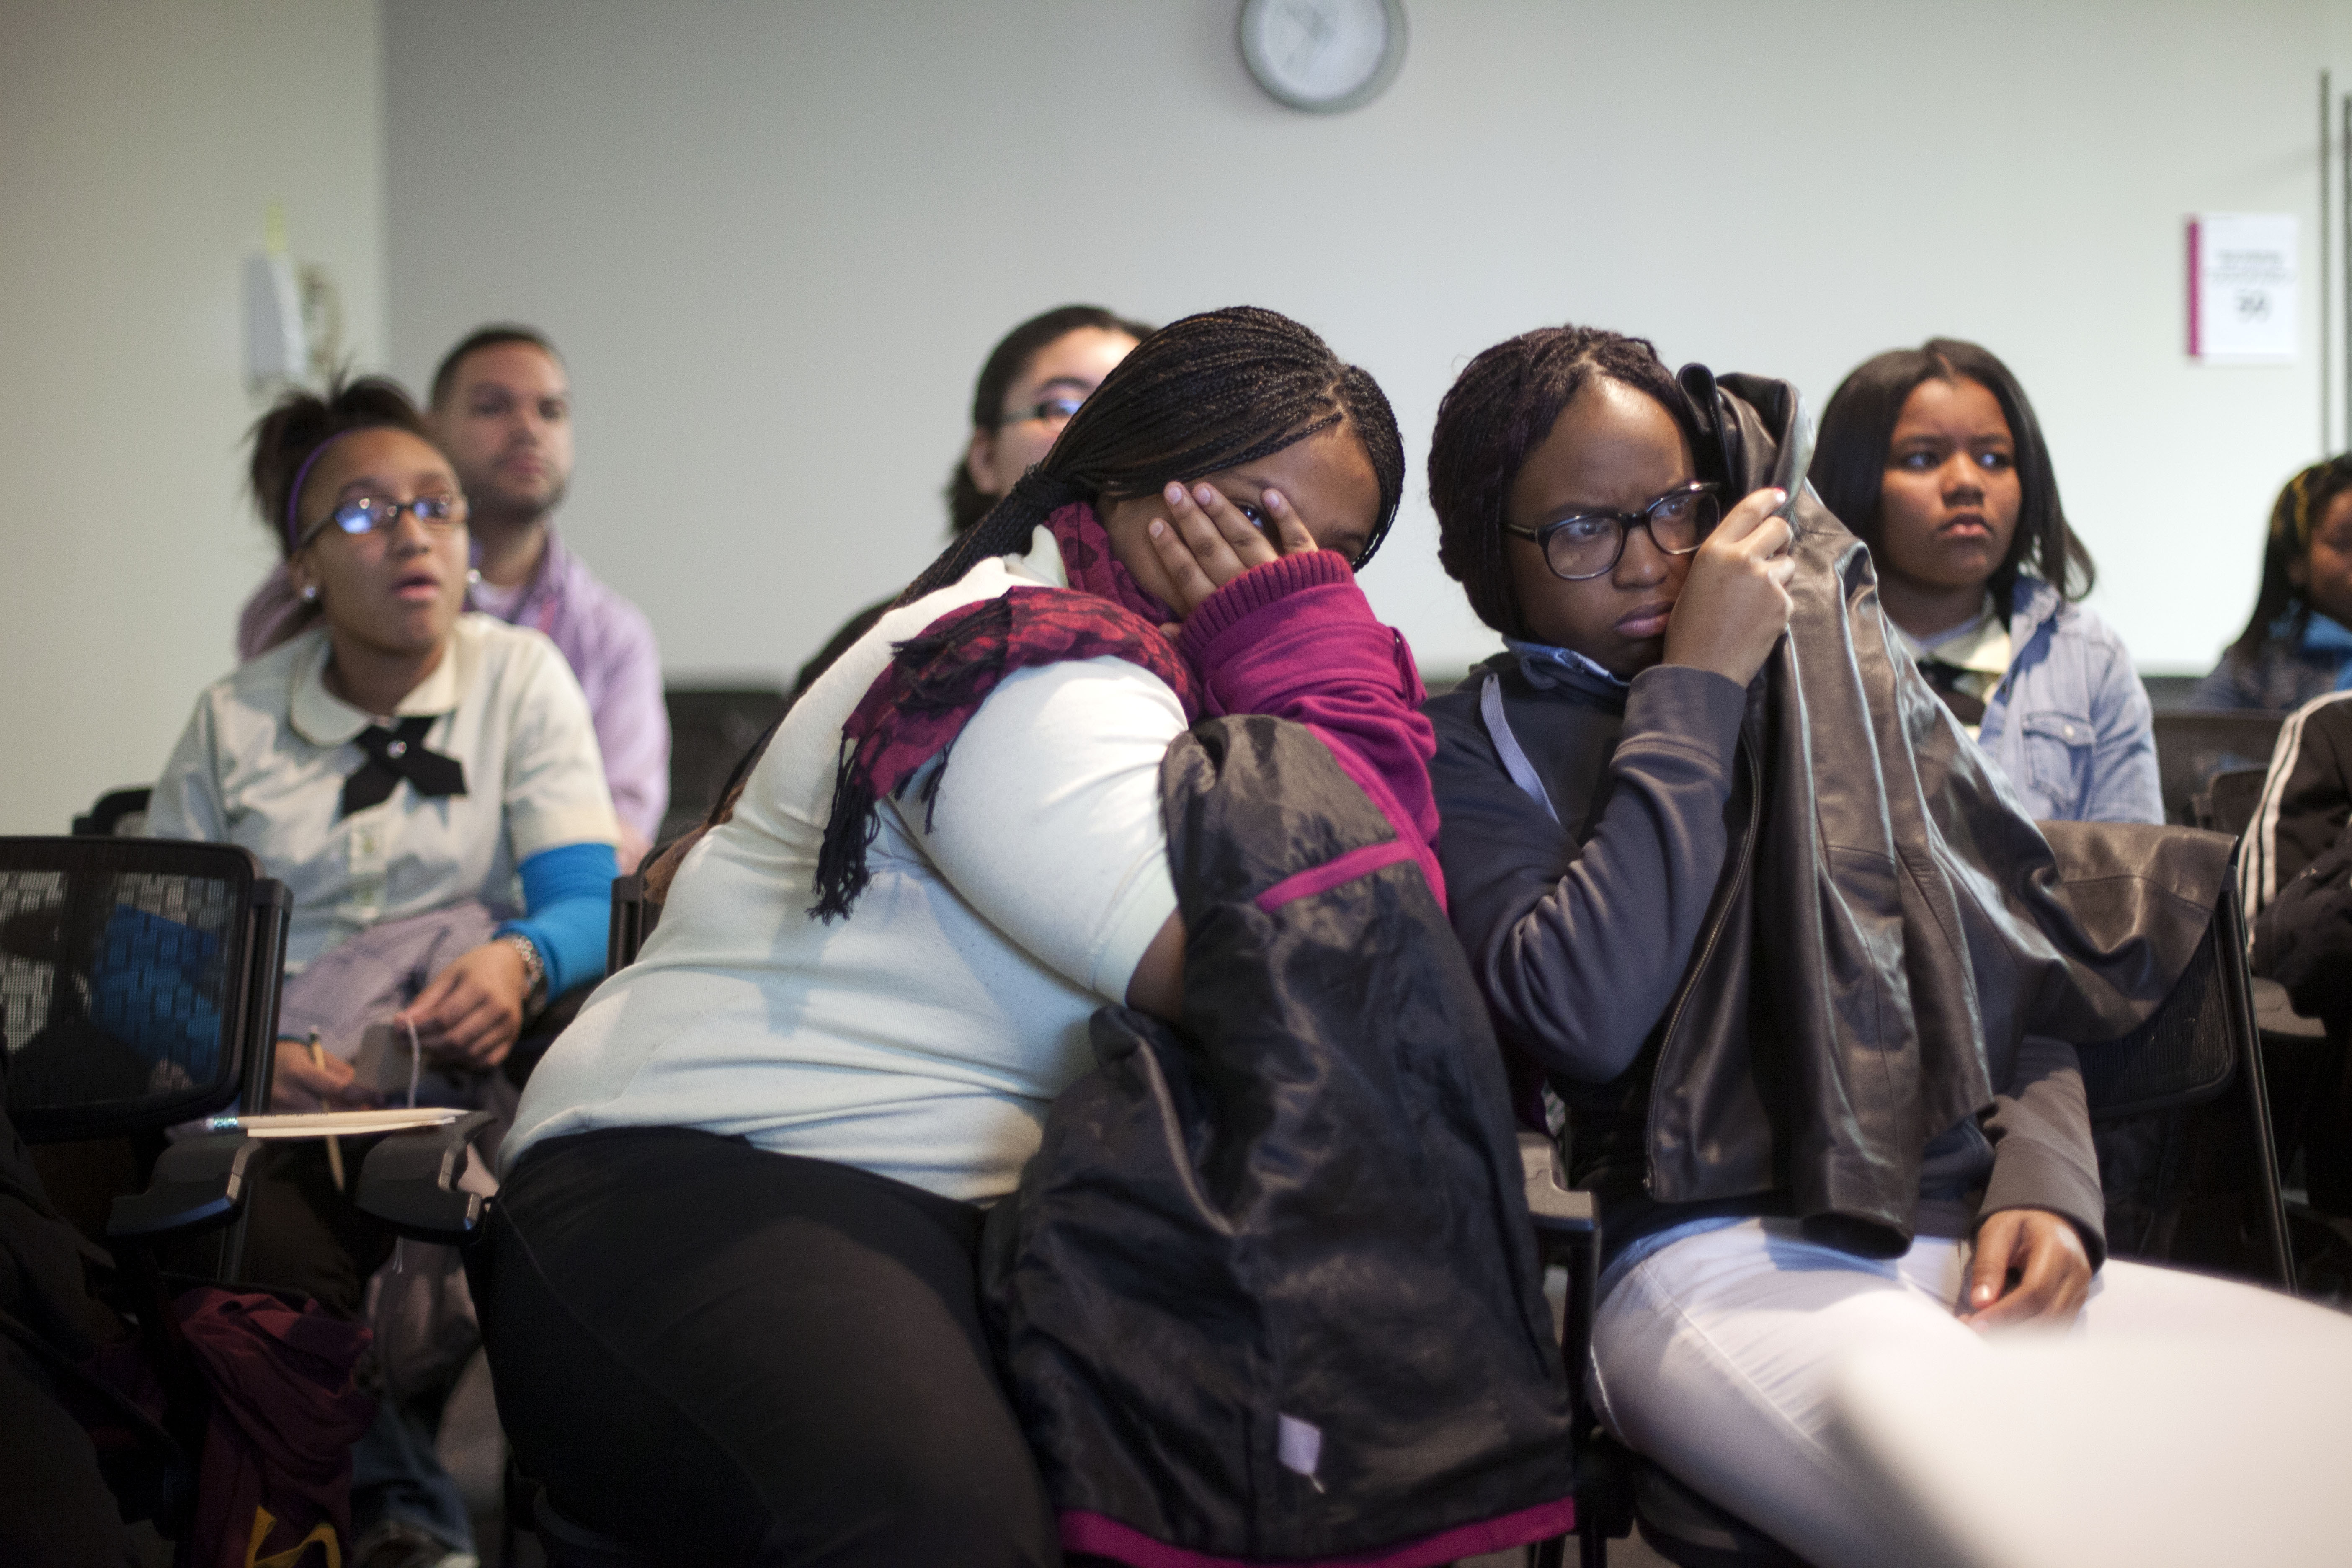 A group of students reacts to images of gunshot injuries during the Cradle to Grave program at Temple University Hospital.